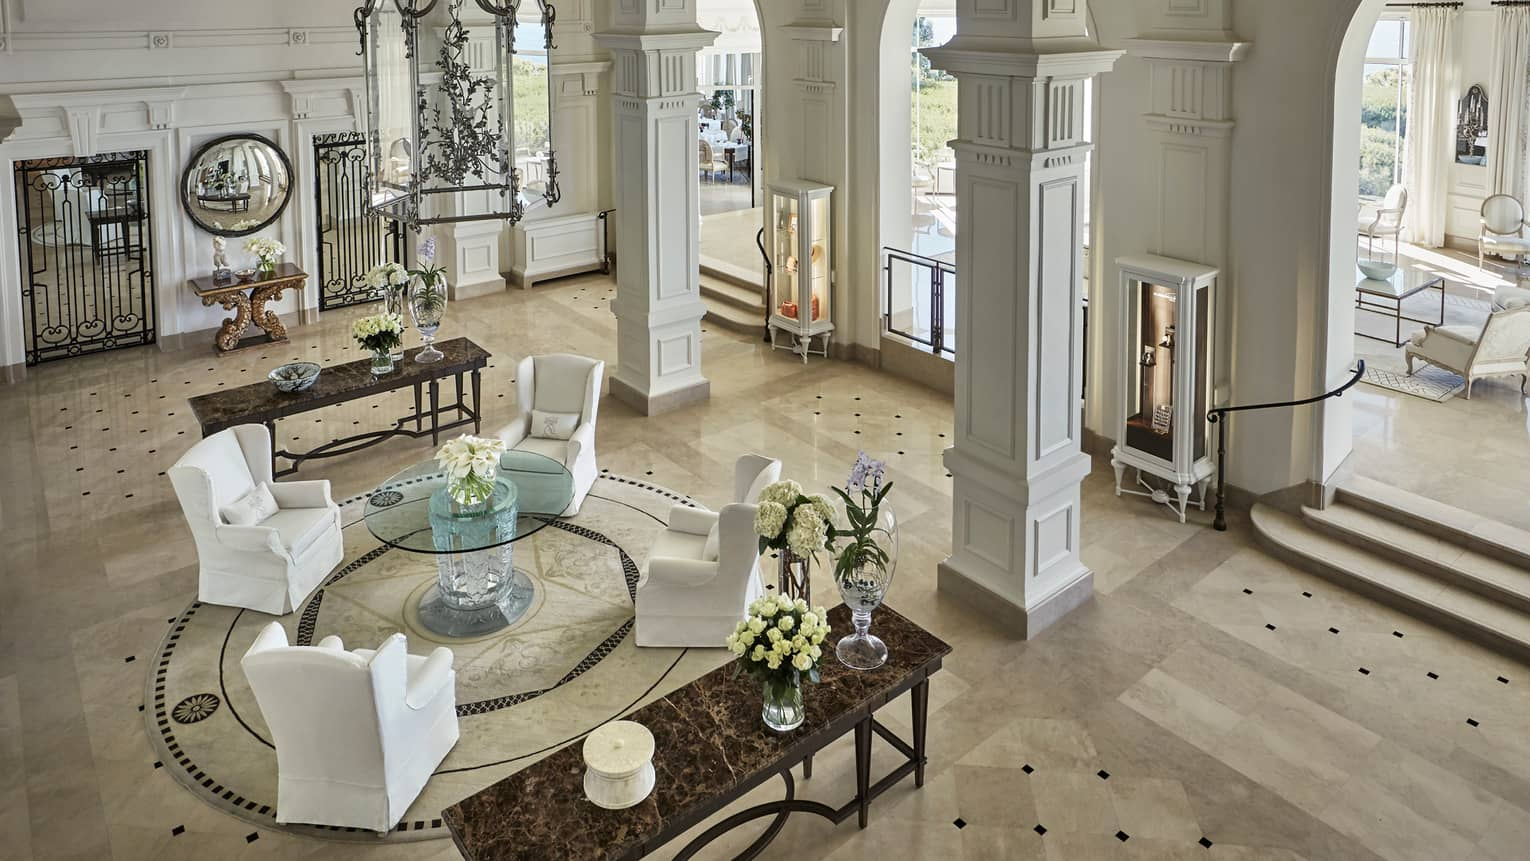 View of bright, palatial hotel lobby, white armchairs on marble floors under pillars